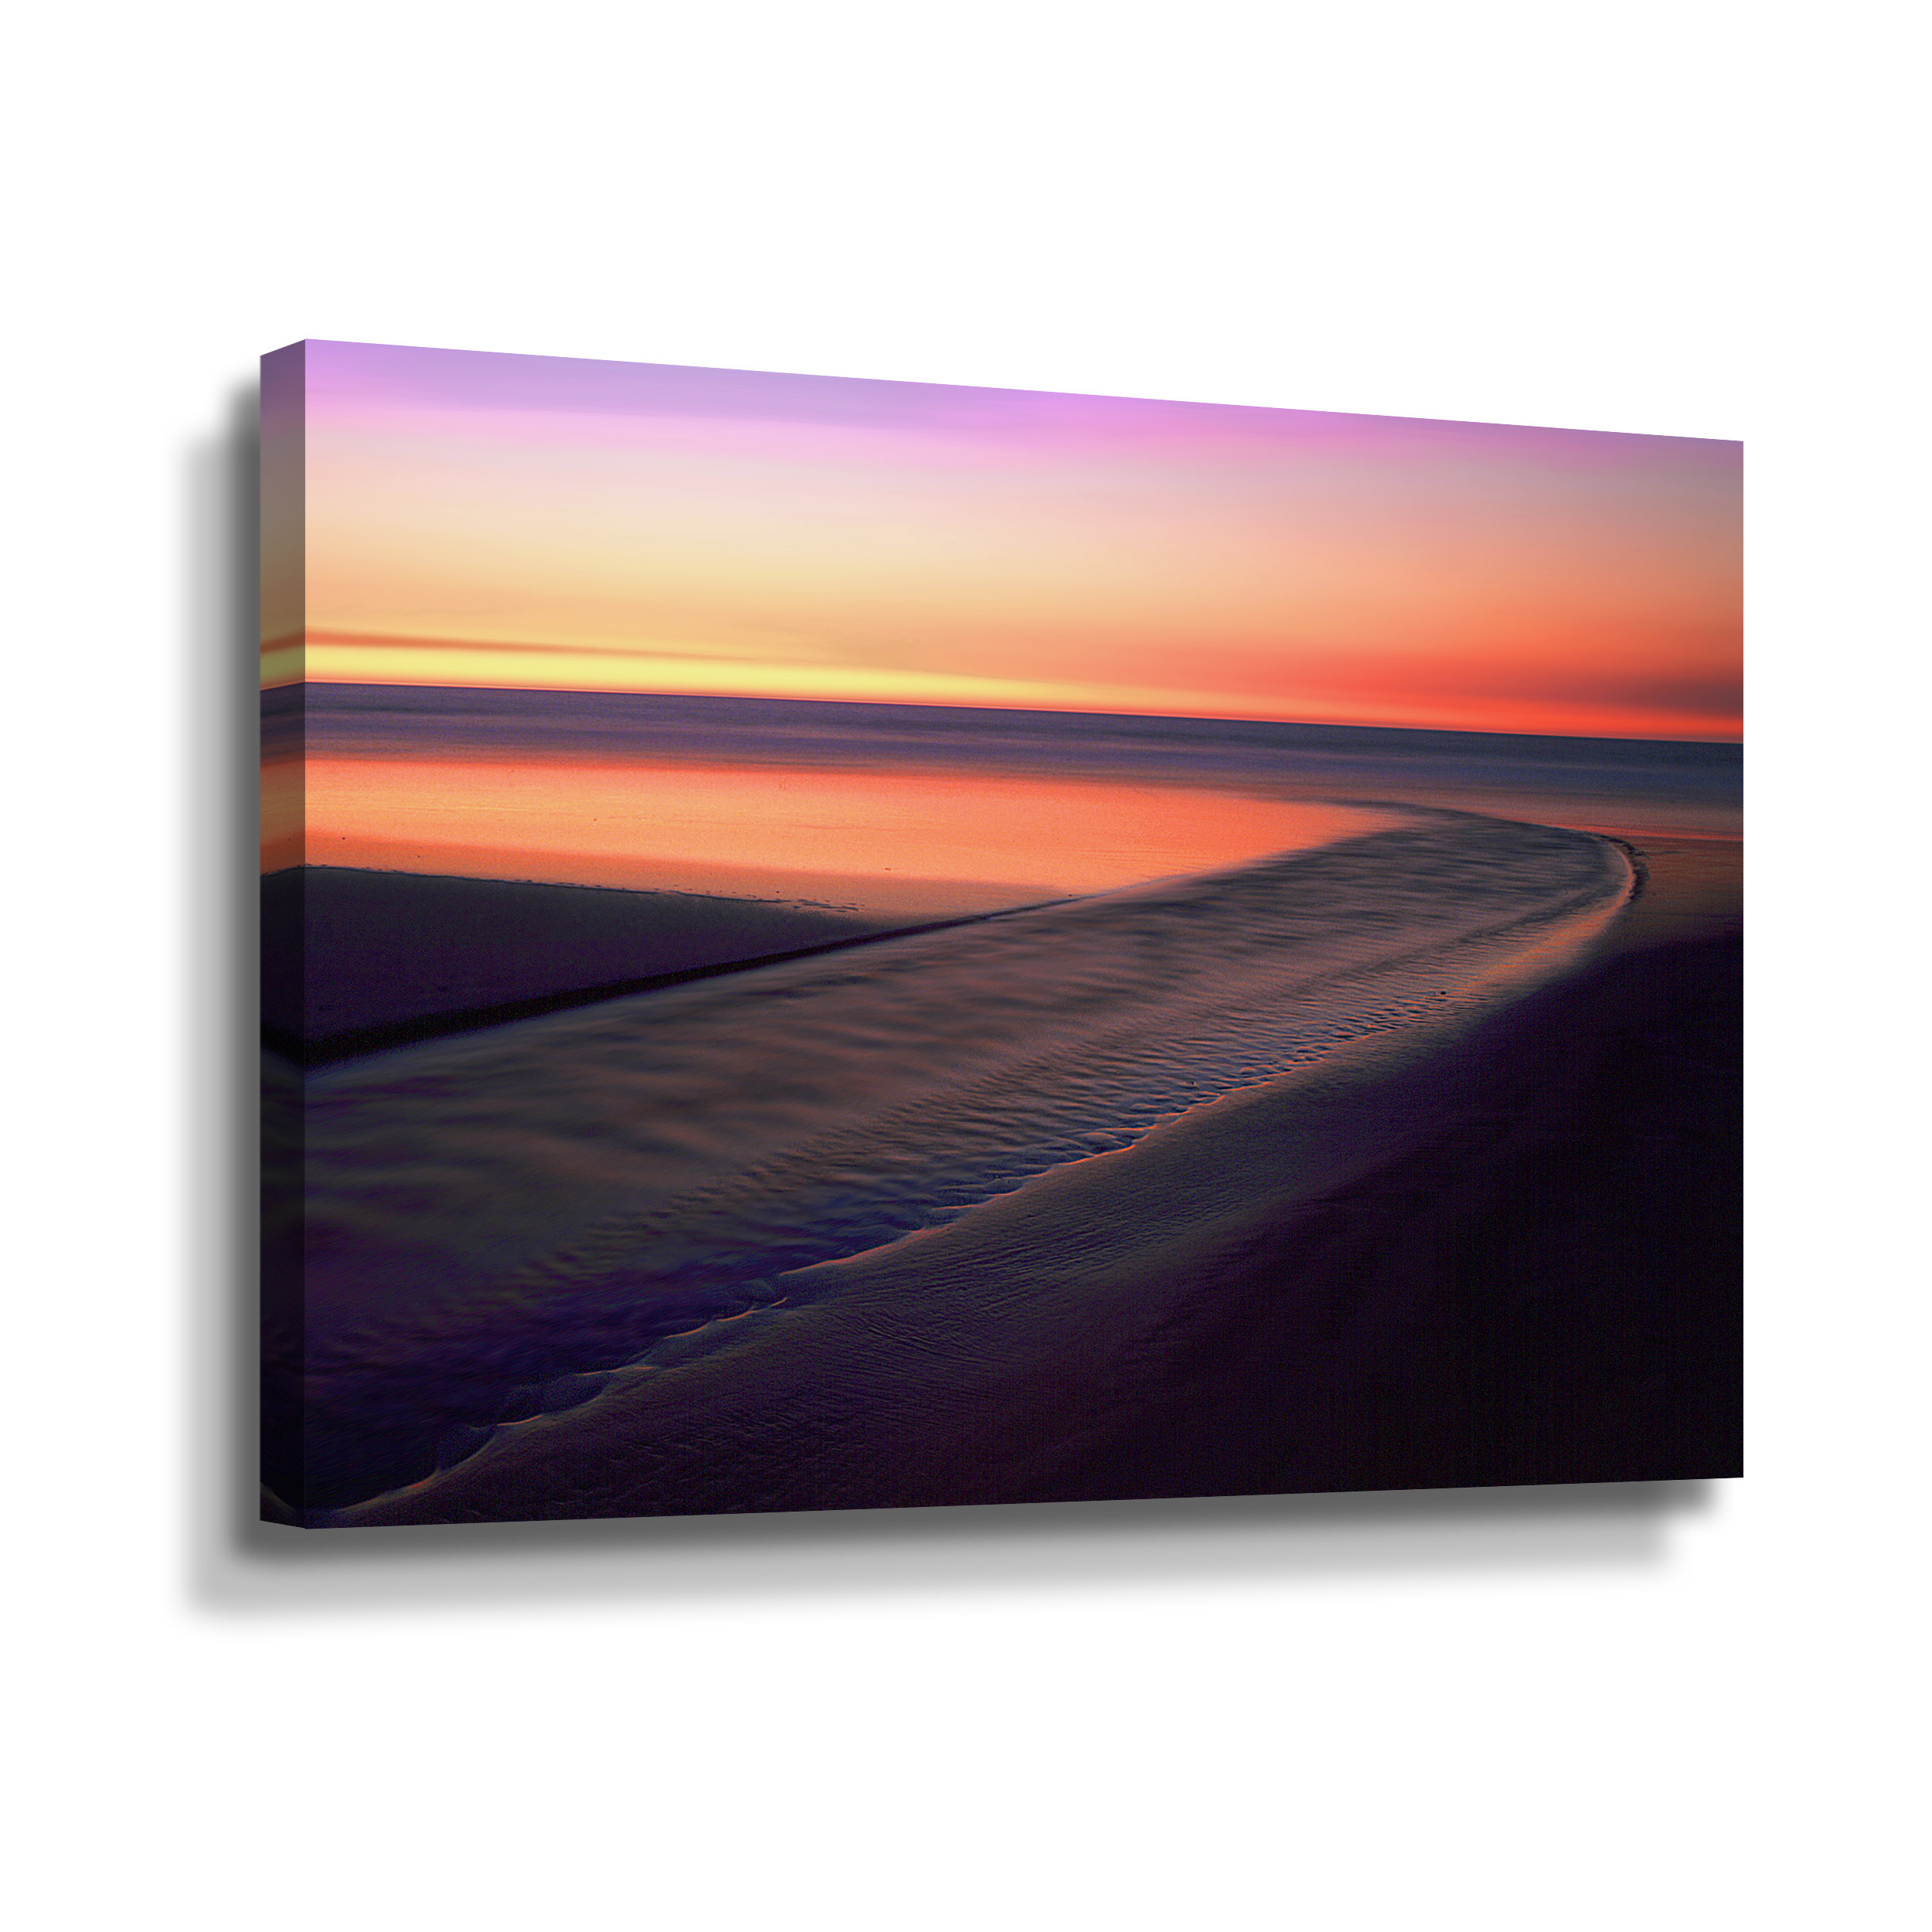 ArtWall Appealz Dean Uhlinger Earth to Heaven Removable Graphic Wall Art 18 by 18-Inch